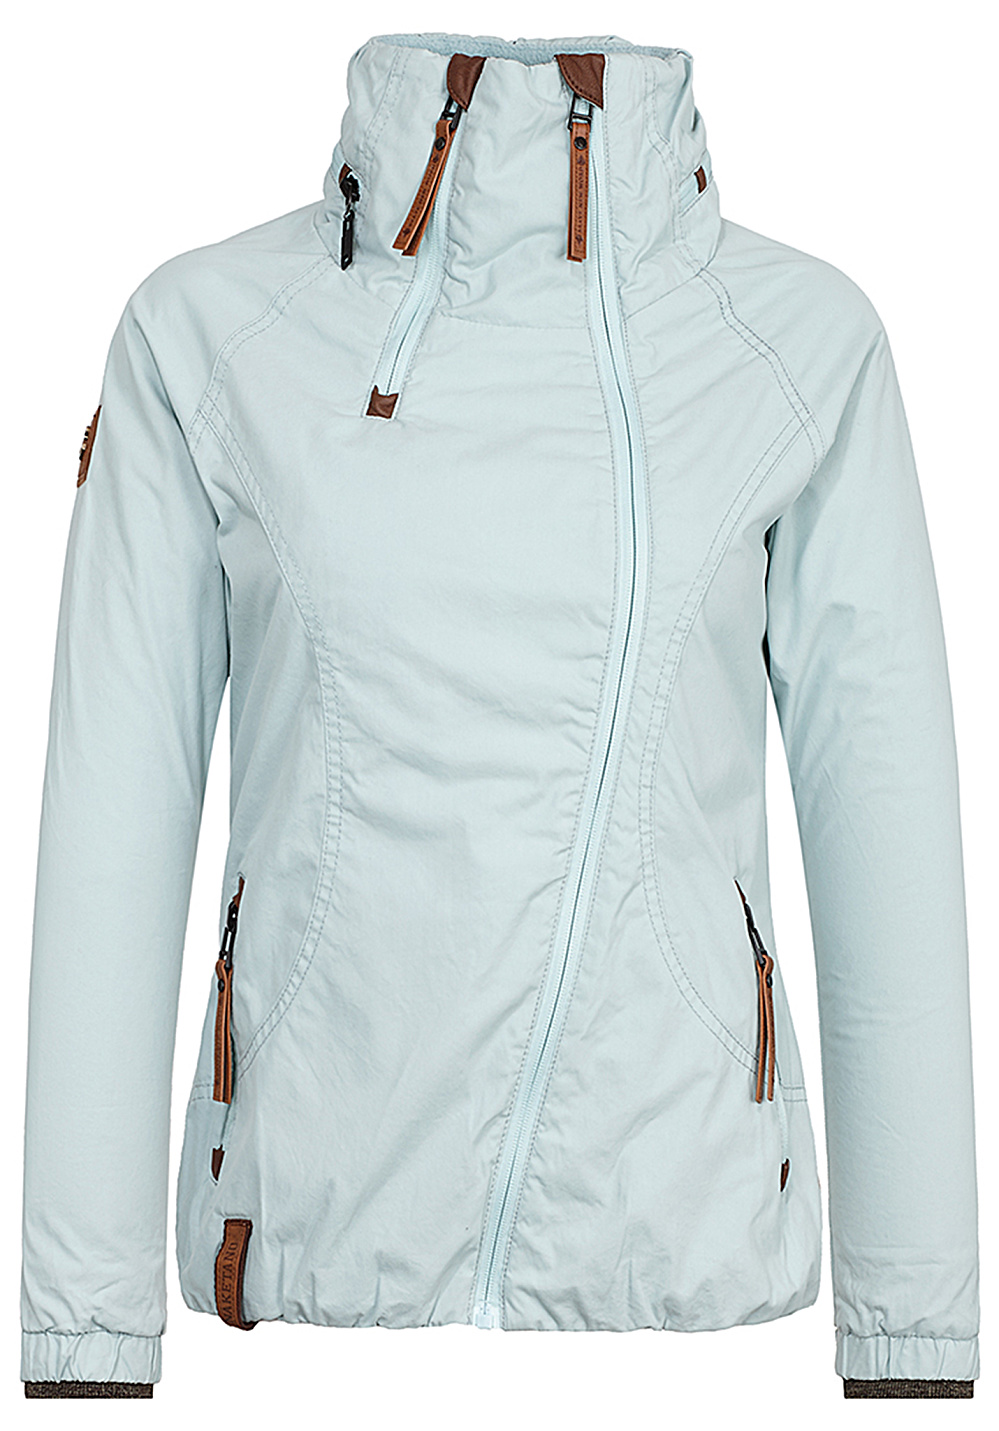 Naketano Female Jacket Kanone ist geladen Pastel Mint